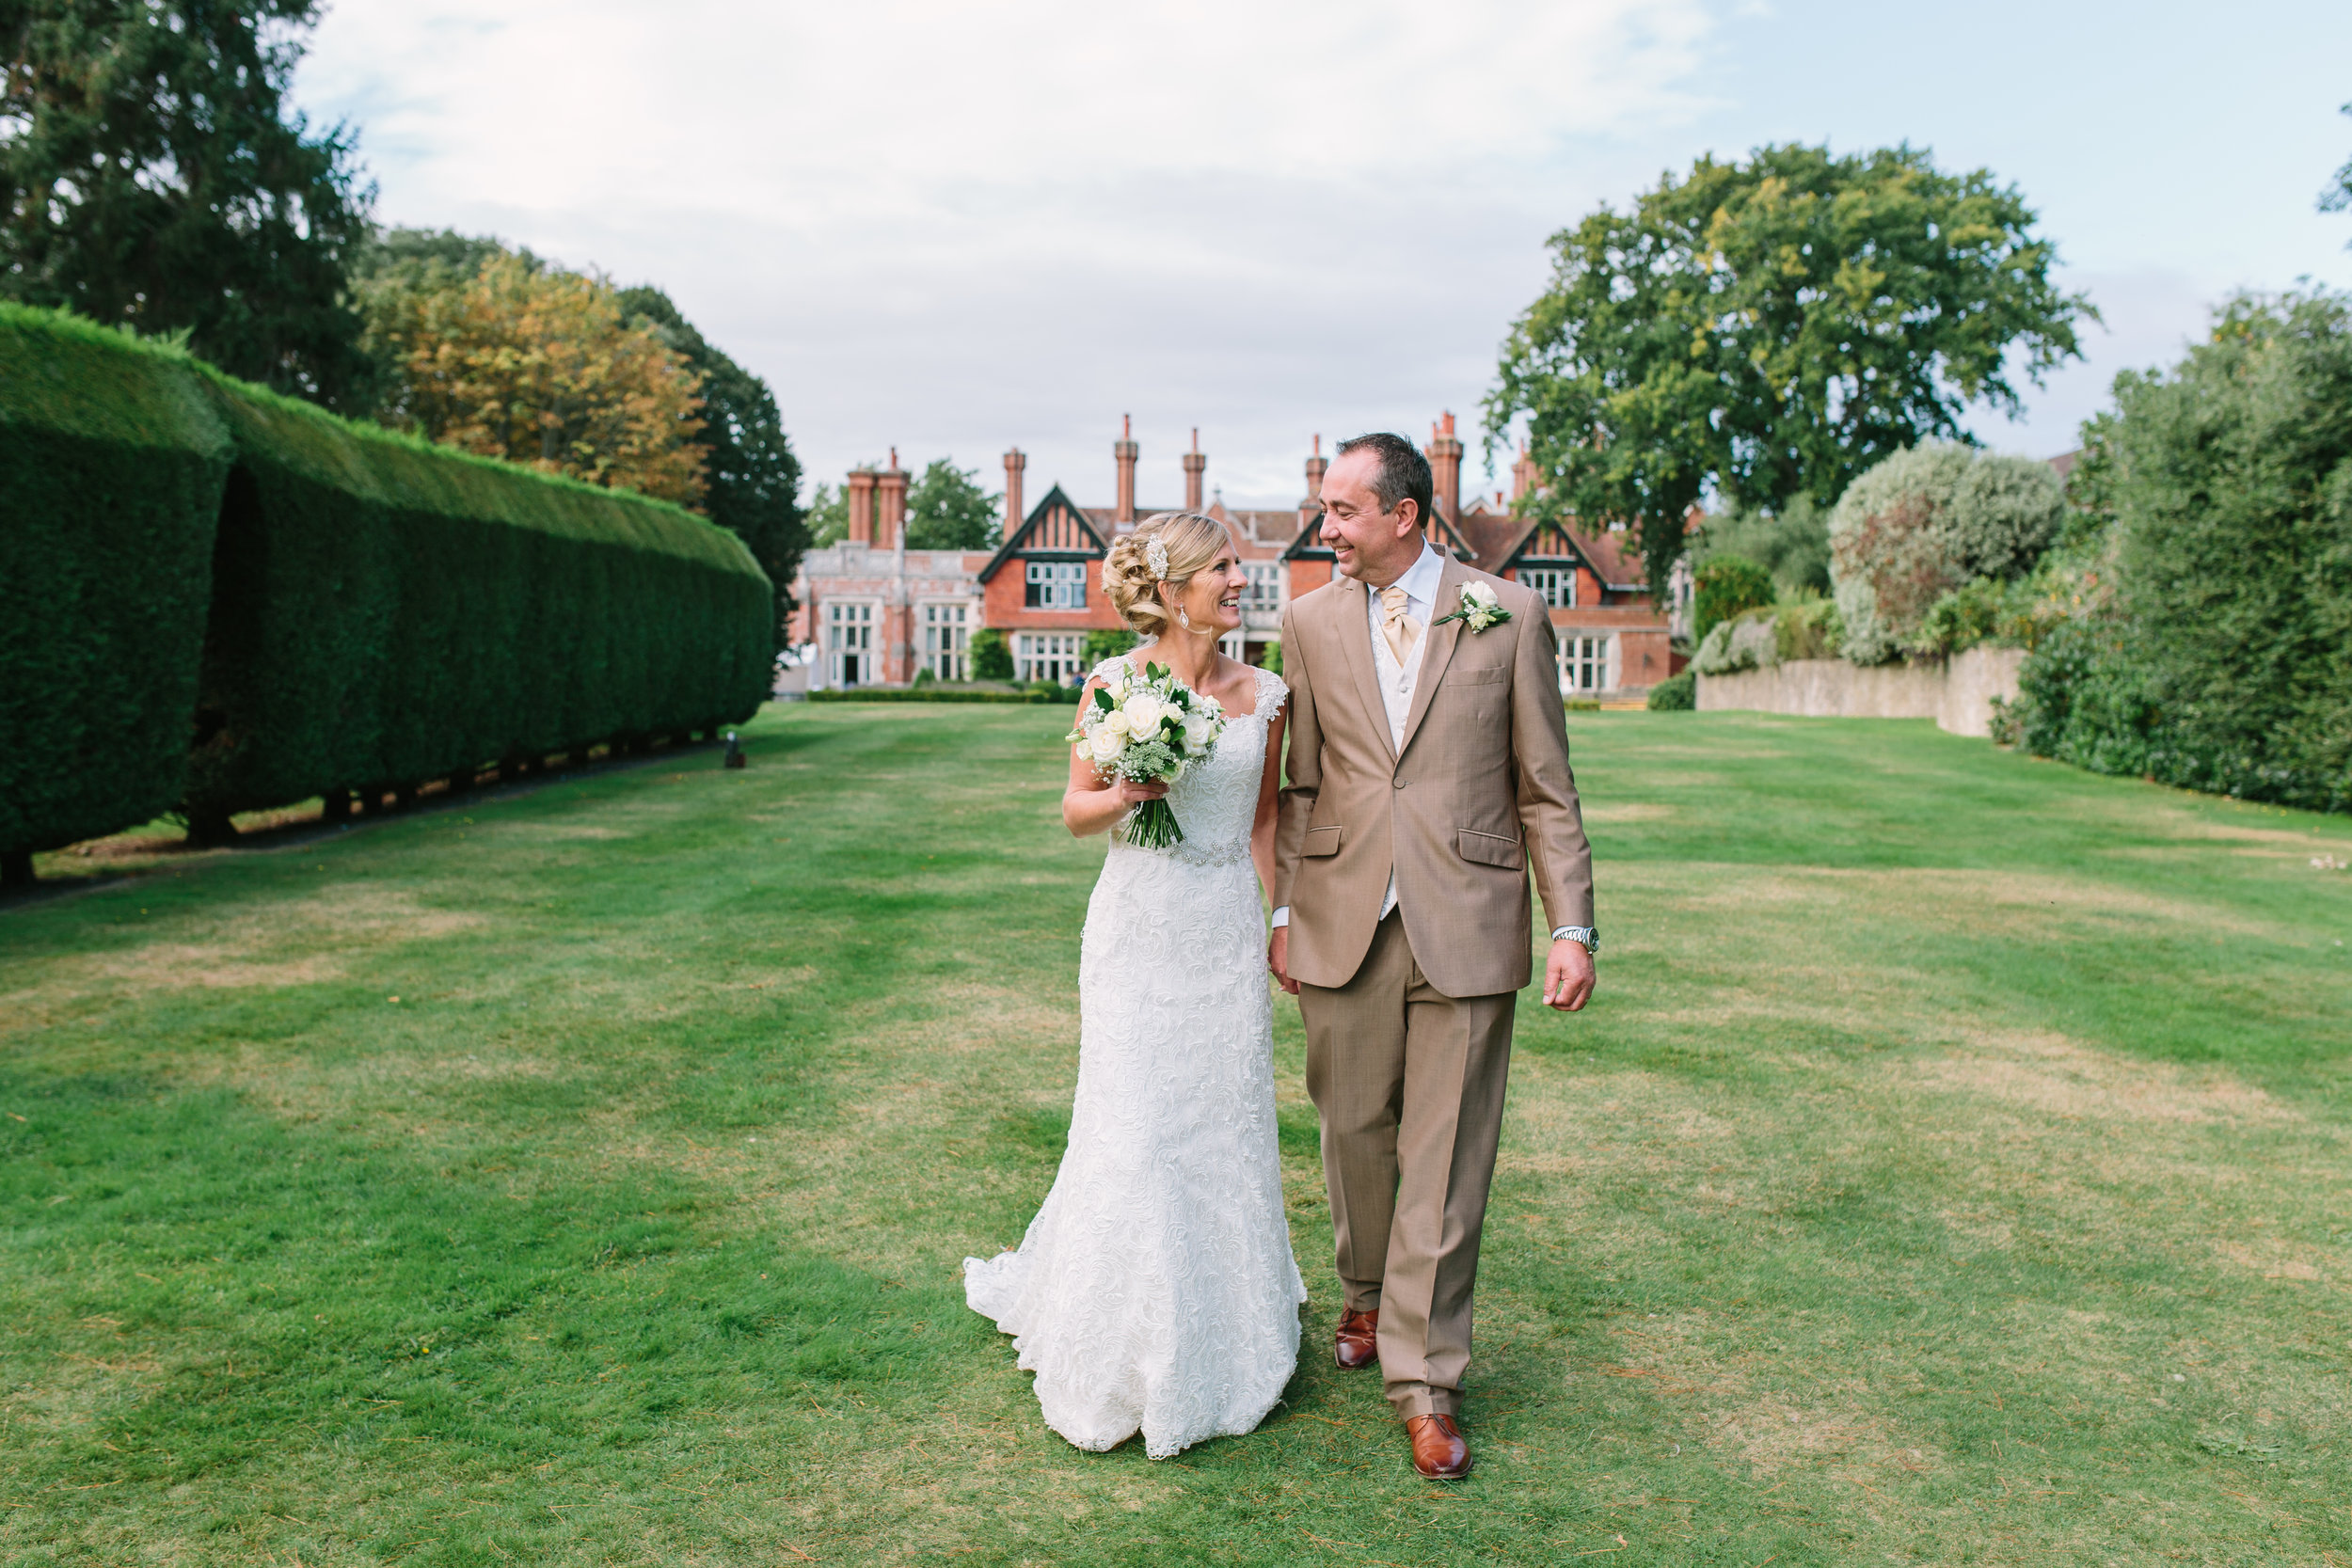 elmers court wedding photos